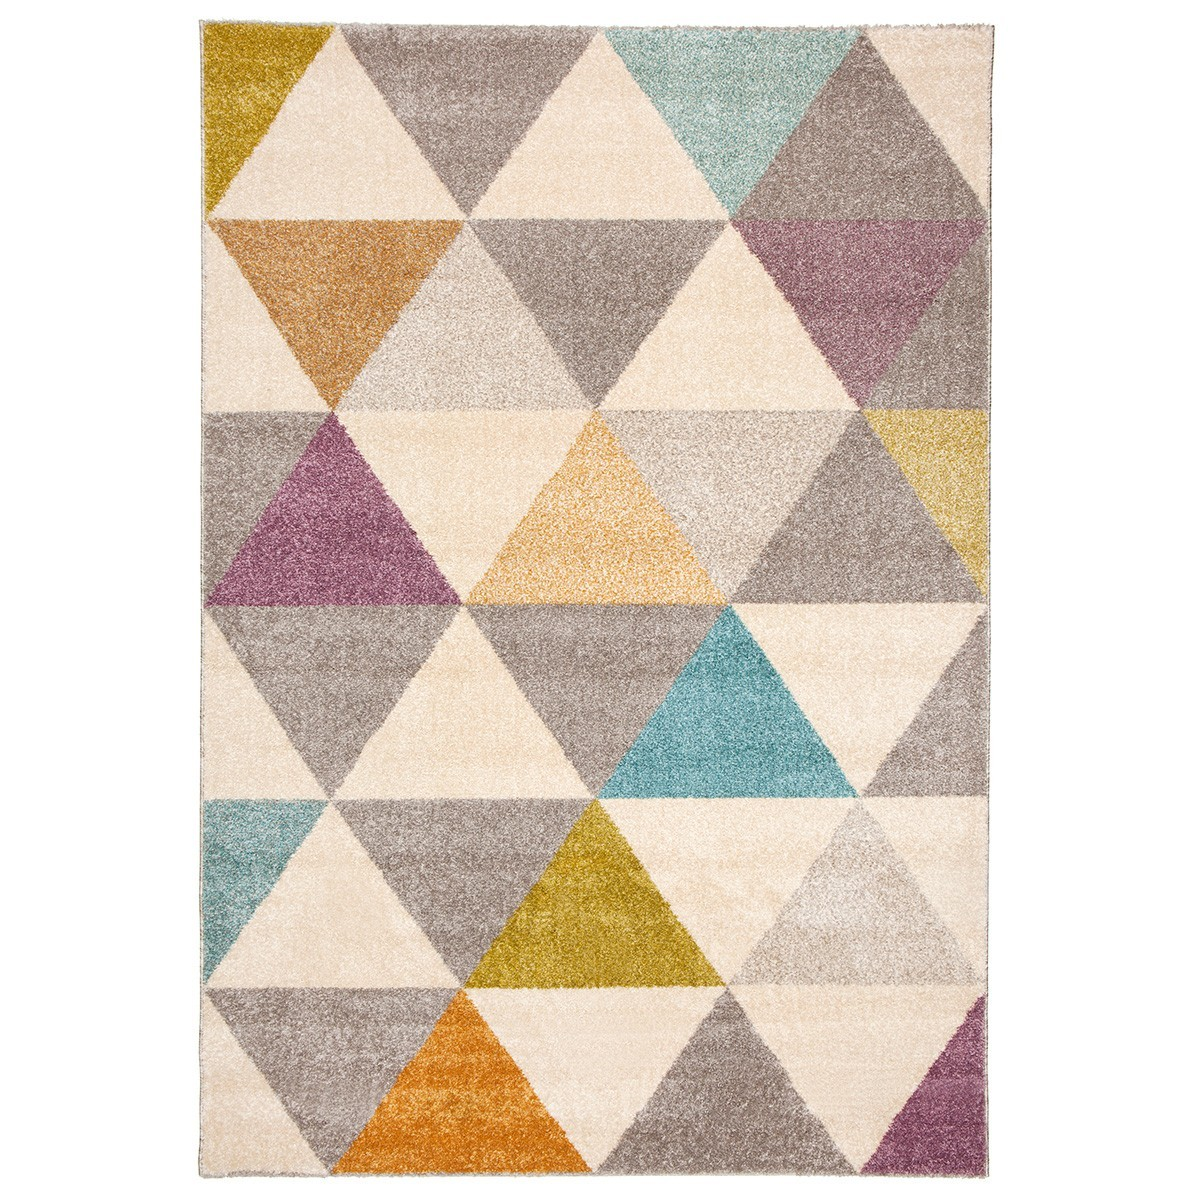 Accent Mazy Belgian Made Modern Rug, 120x170cm, Multi